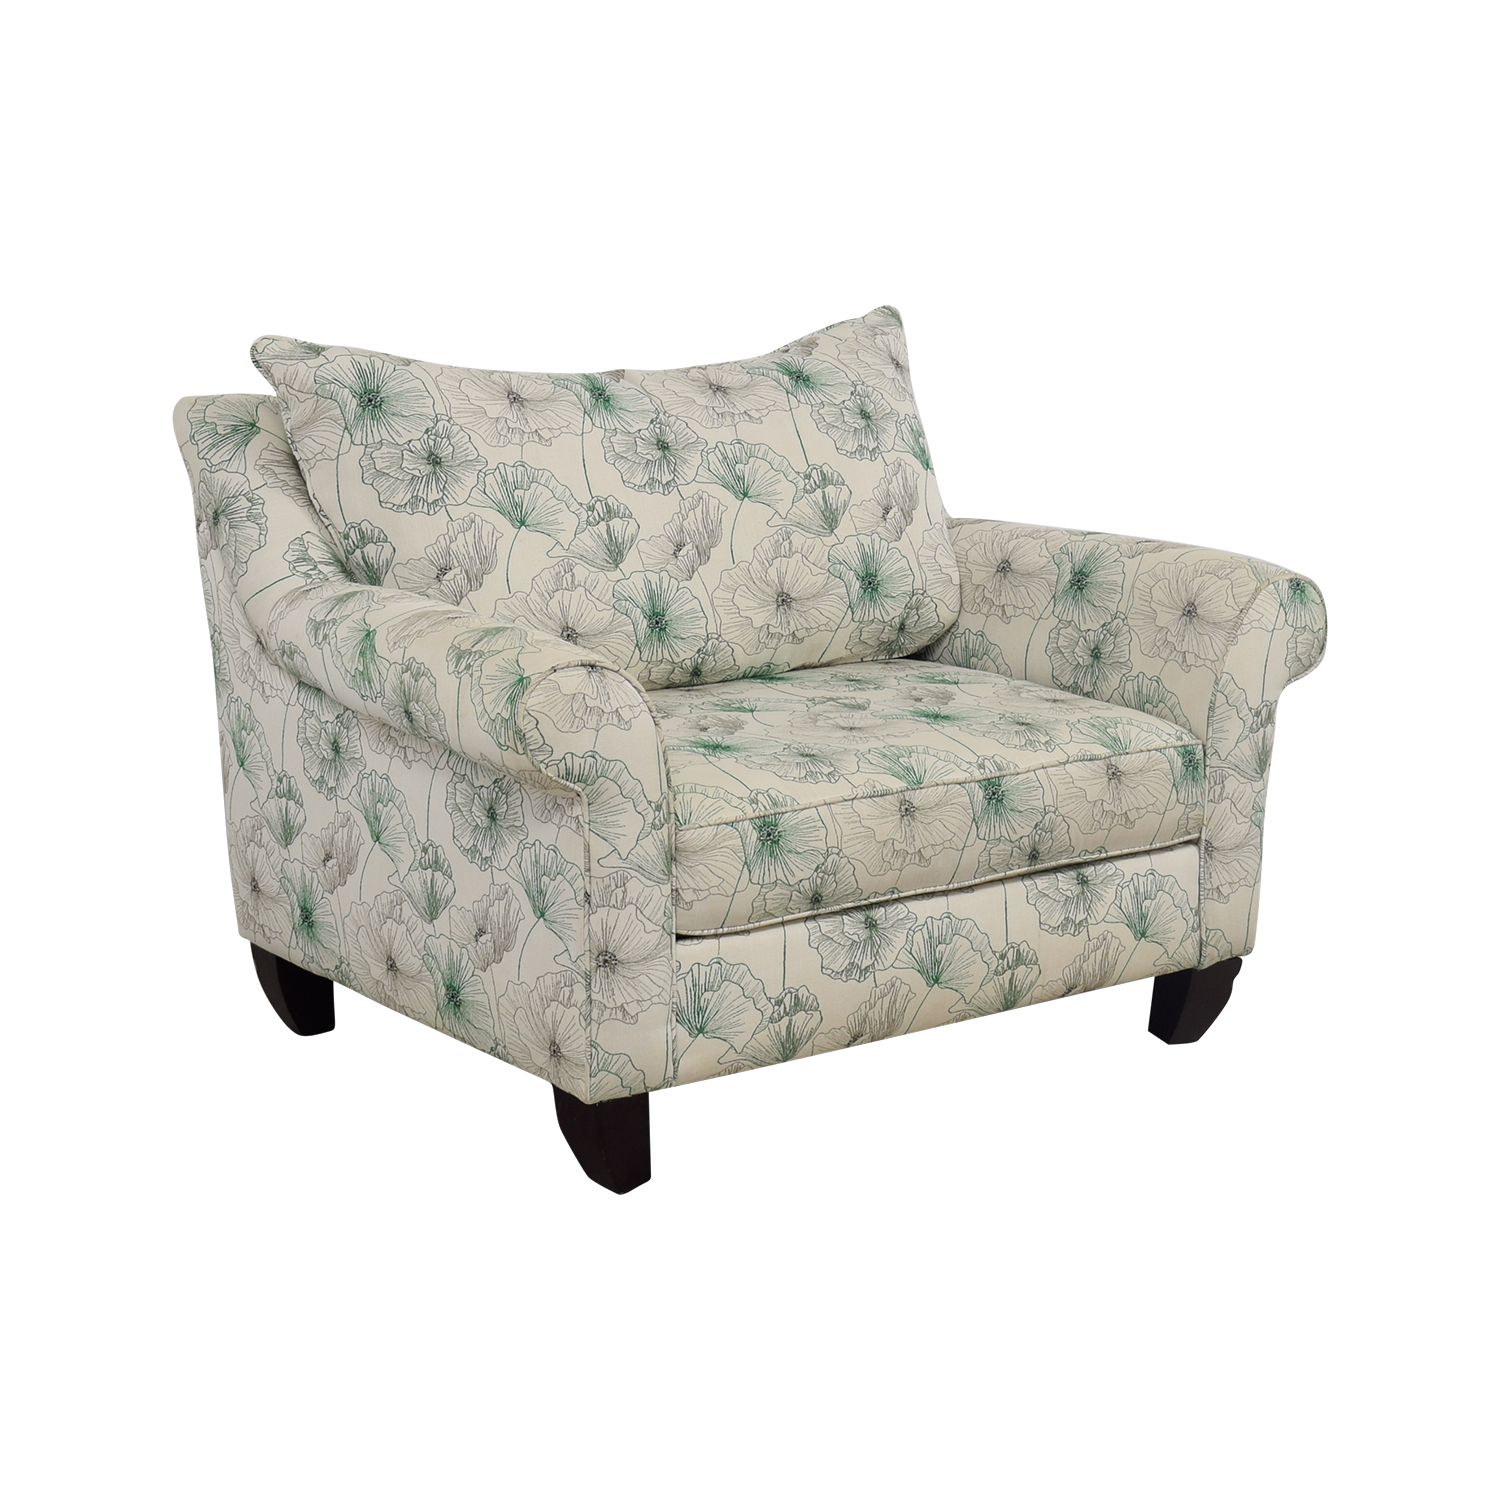 American Signature White and Green Floral  Loveseat / Loveseats